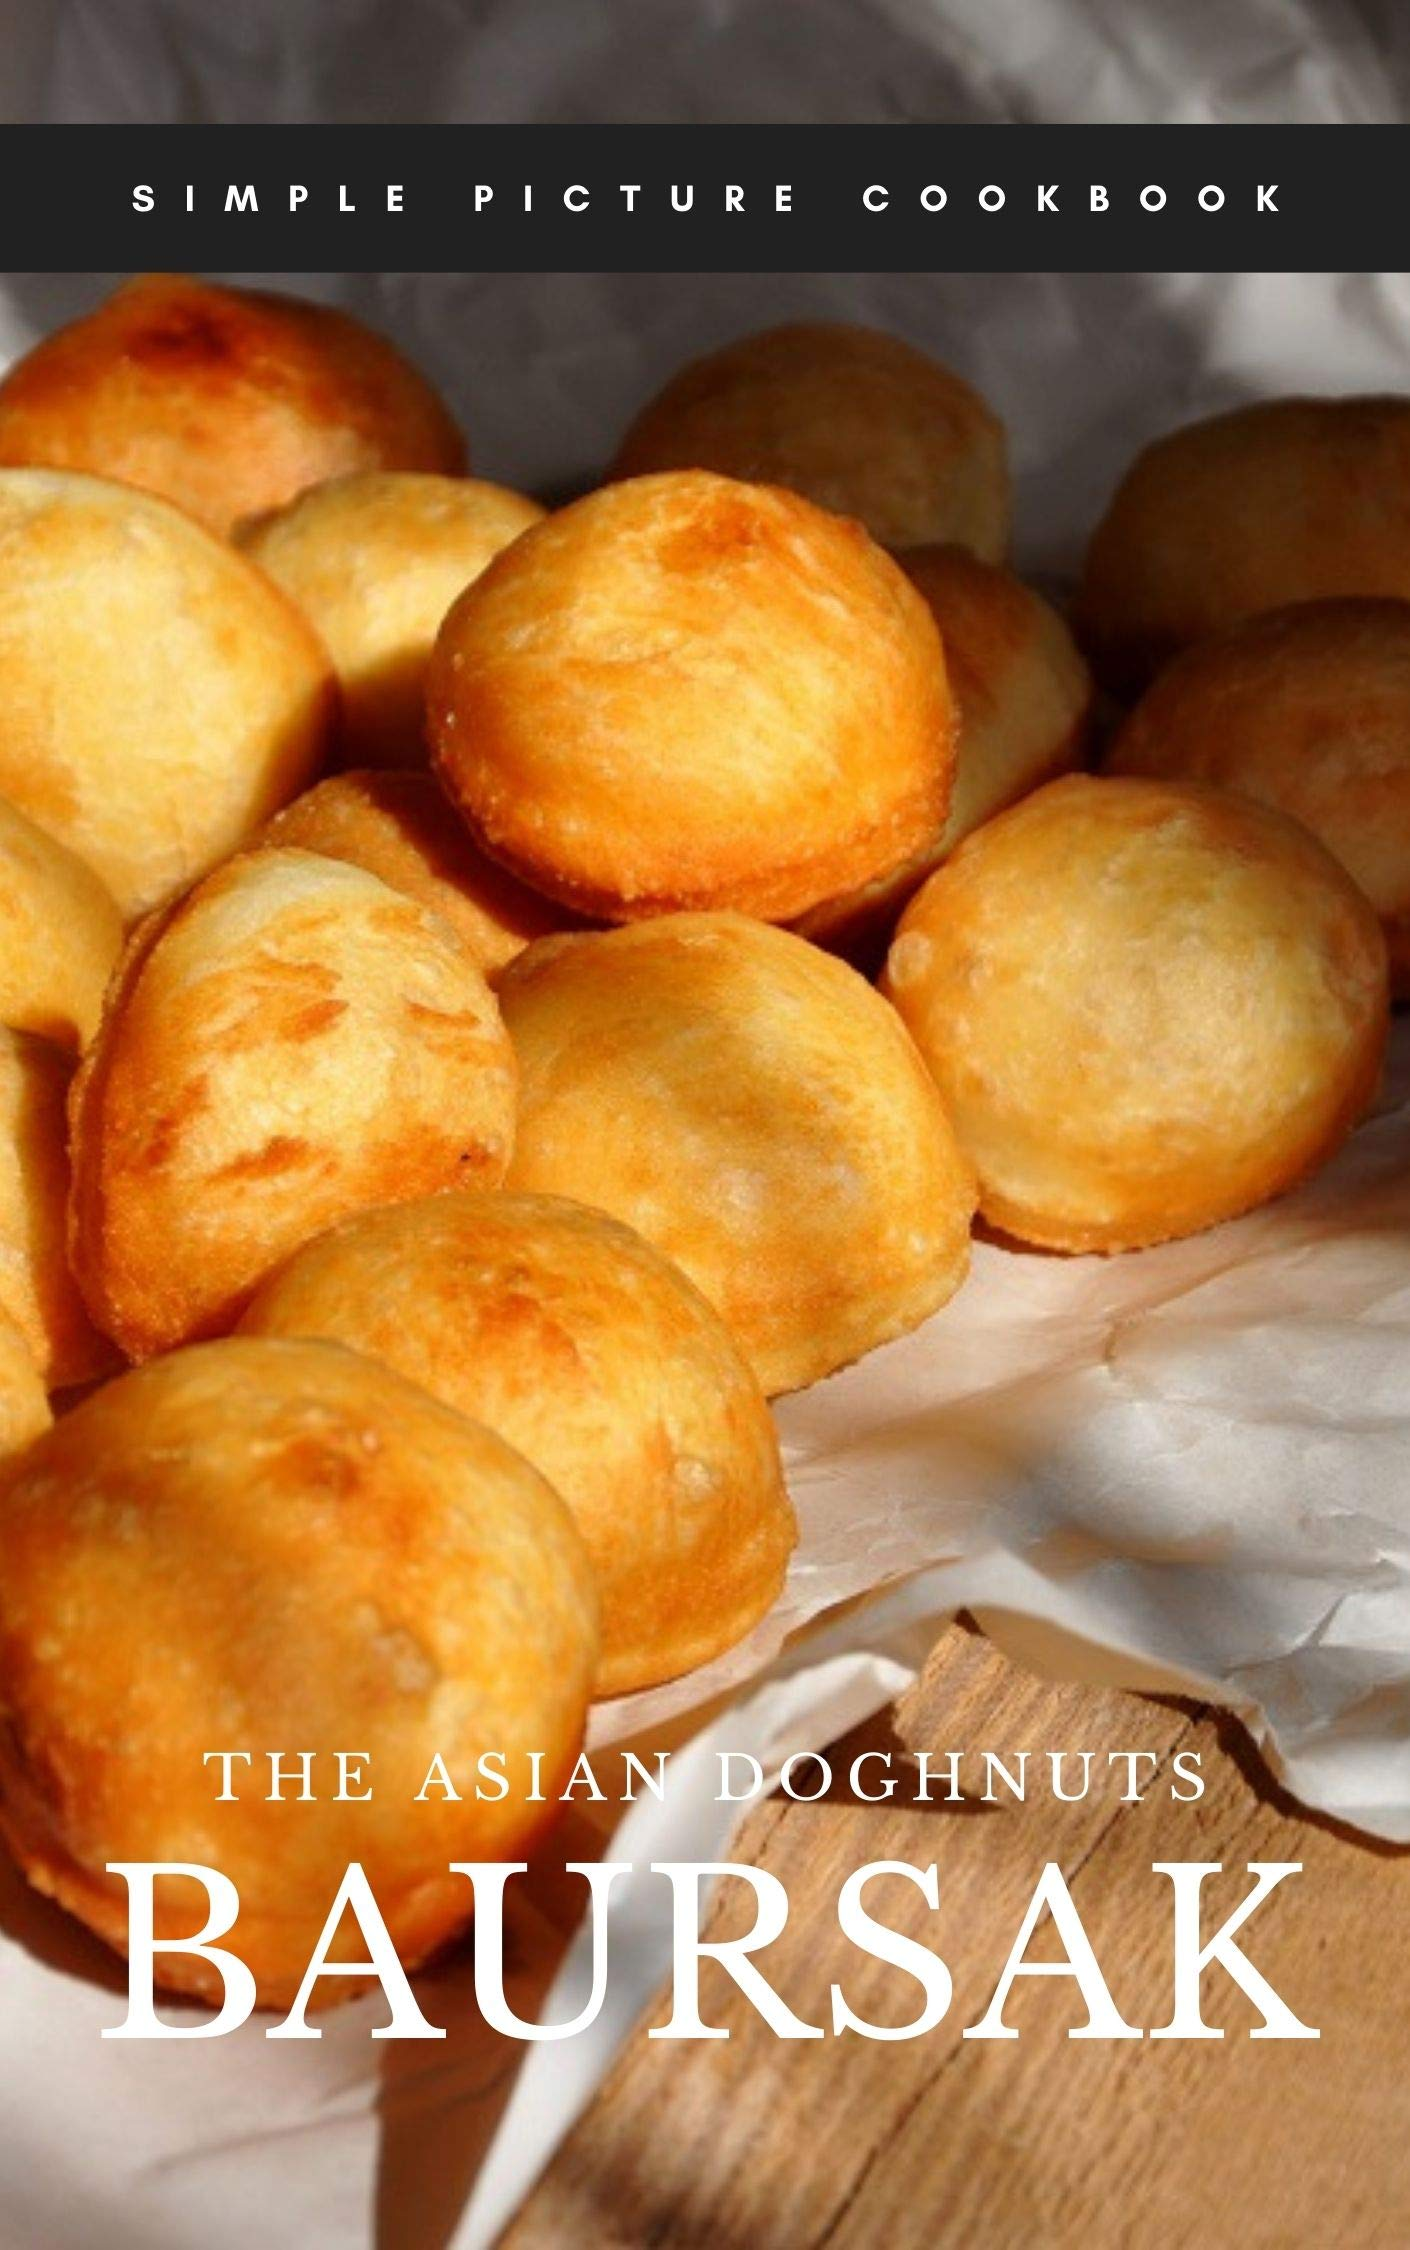 The Asian Doughnuts Baursak simple picture cookbook for everyone: No more words, just action only +video demonstration link inside the book for free download